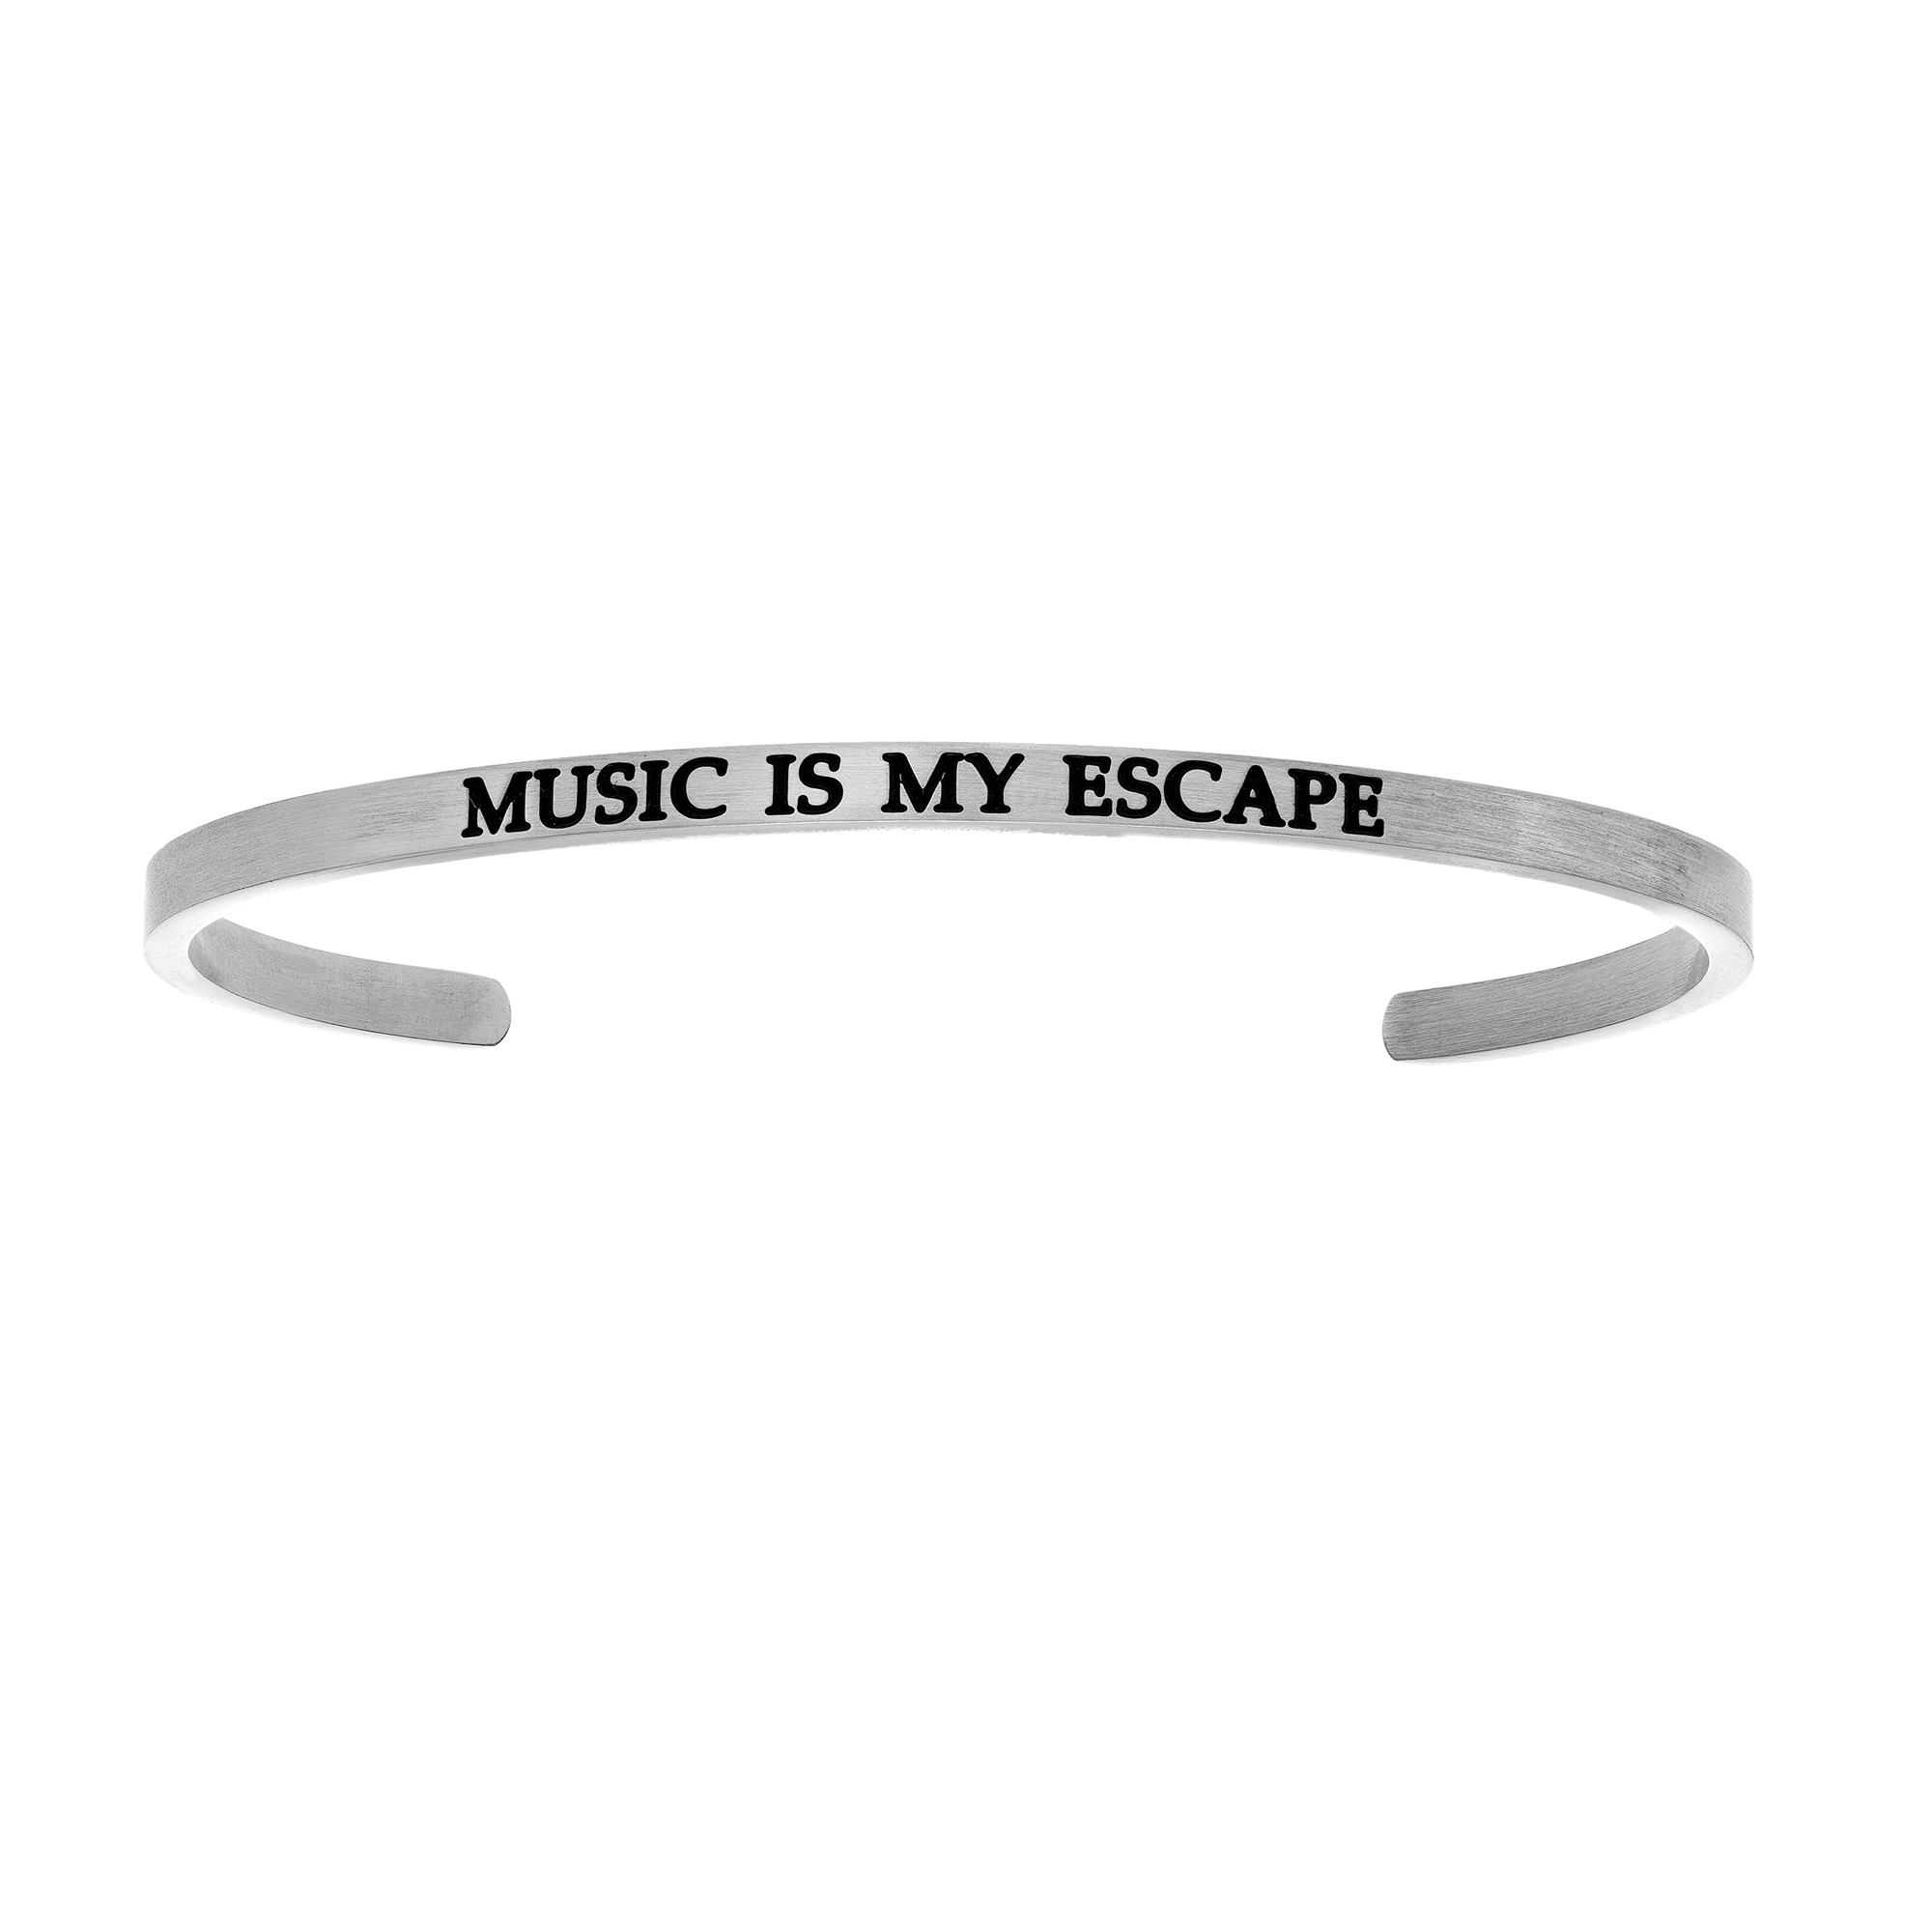 Intuitions Stainless Steel MUSIC IS MY ESCAPE Diamond Accent Cuff Bangle Bracelet, 7″